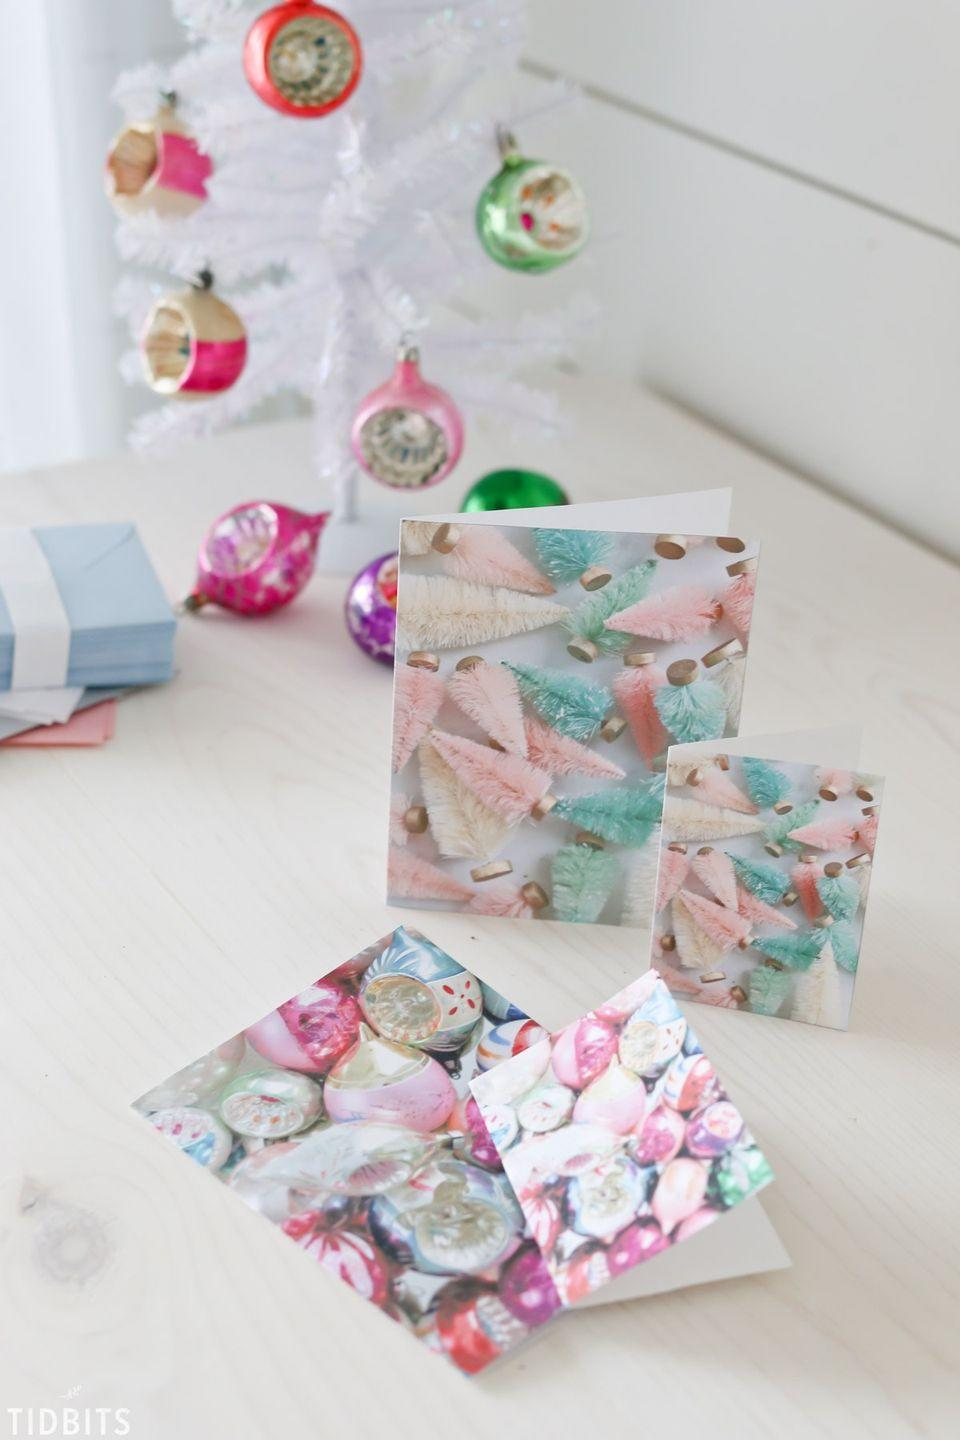 """<p>If easy as can be is your signature style, you'll love these one-step printable cards. </p><p><em>Get the tutorial at <a href=""""https://www.tidbits-cami.com/free-printable-colorful-christmas-cards/"""" rel=""""nofollow noopener"""" target=""""_blank"""" data-ylk=""""slk:Tidbits"""" class=""""link rapid-noclick-resp"""">Tidbits</a>.</em></p>"""